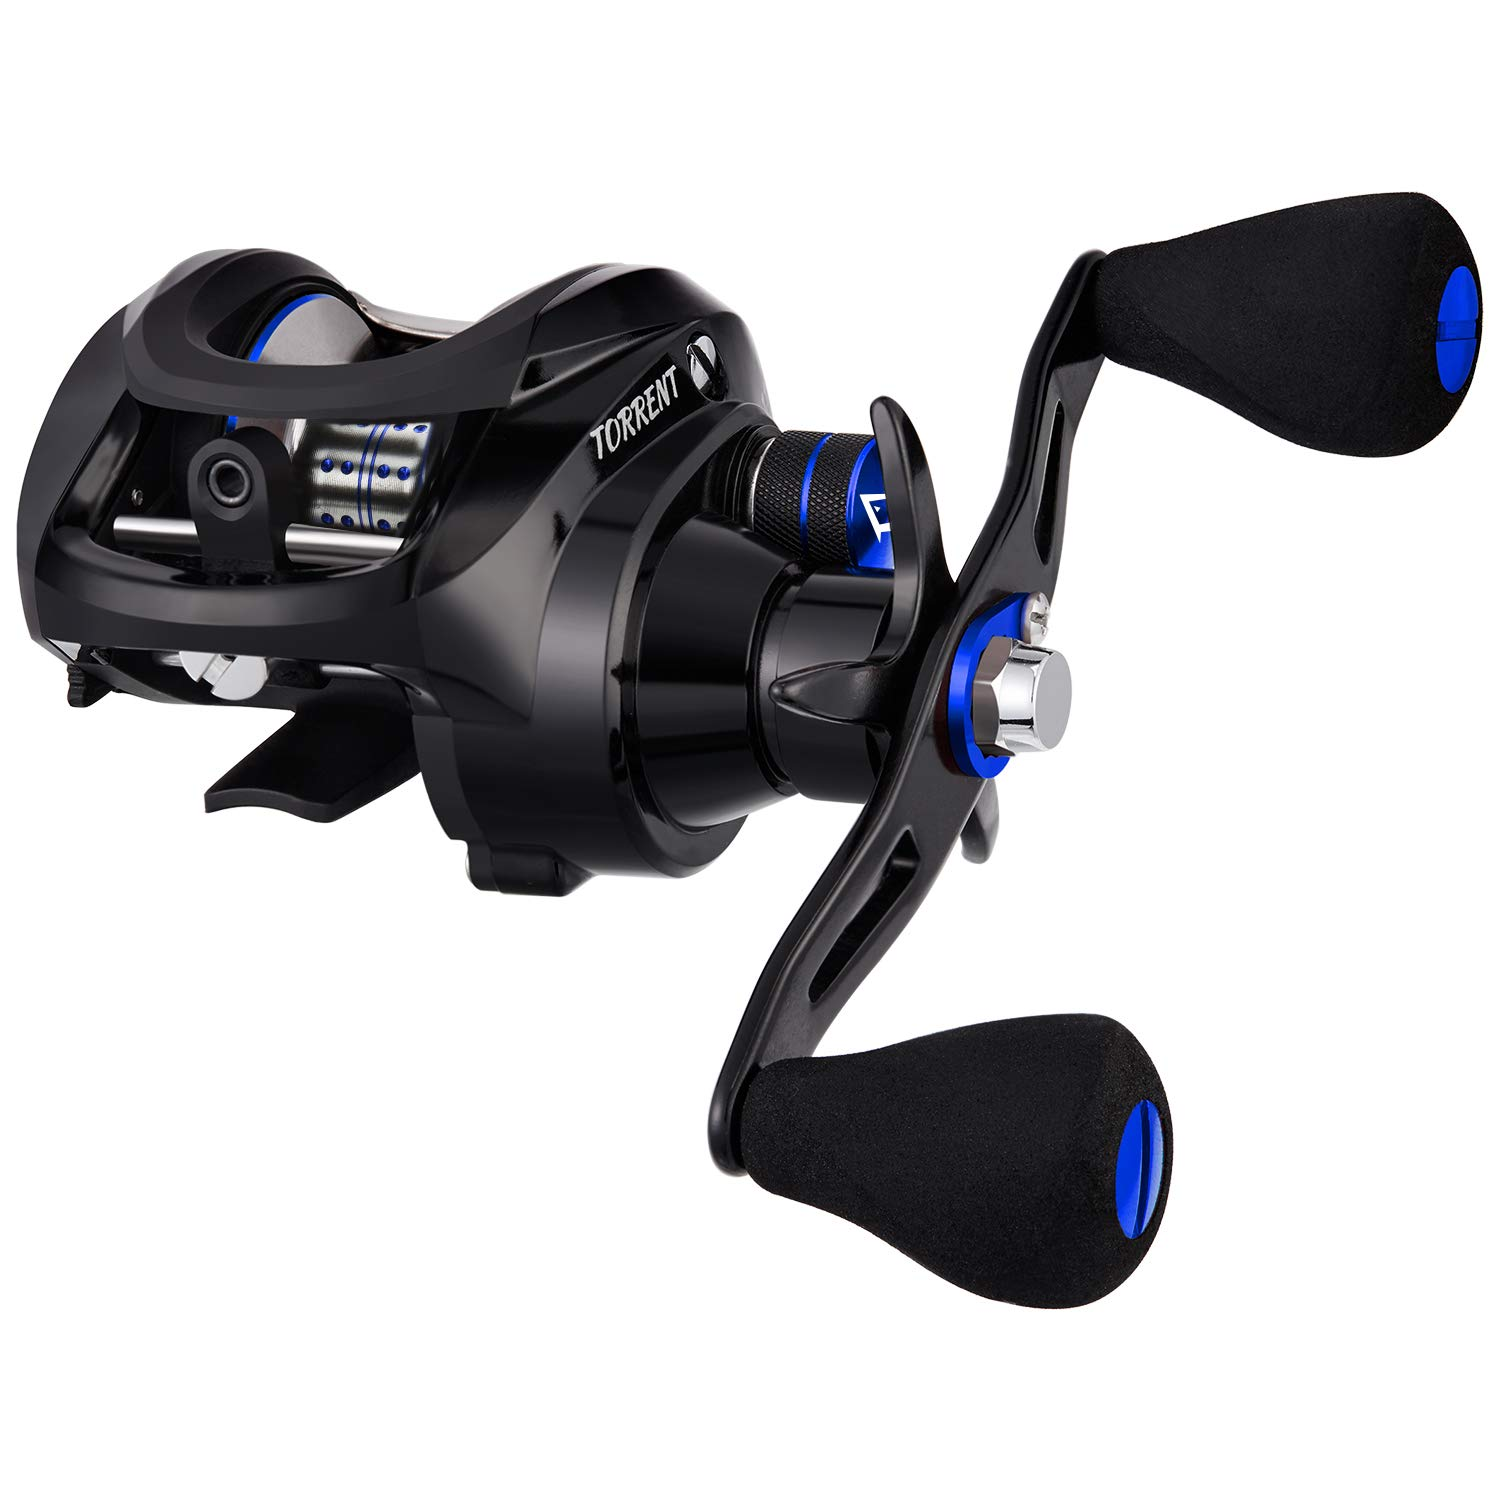 Piscifun Torrent 5.3 1 Low Profile Baitcasting Reel – 18LB Carbon Fiber Drag, Magnetic Brake Baitcasters, Affordable Baitcast Fishing Reels